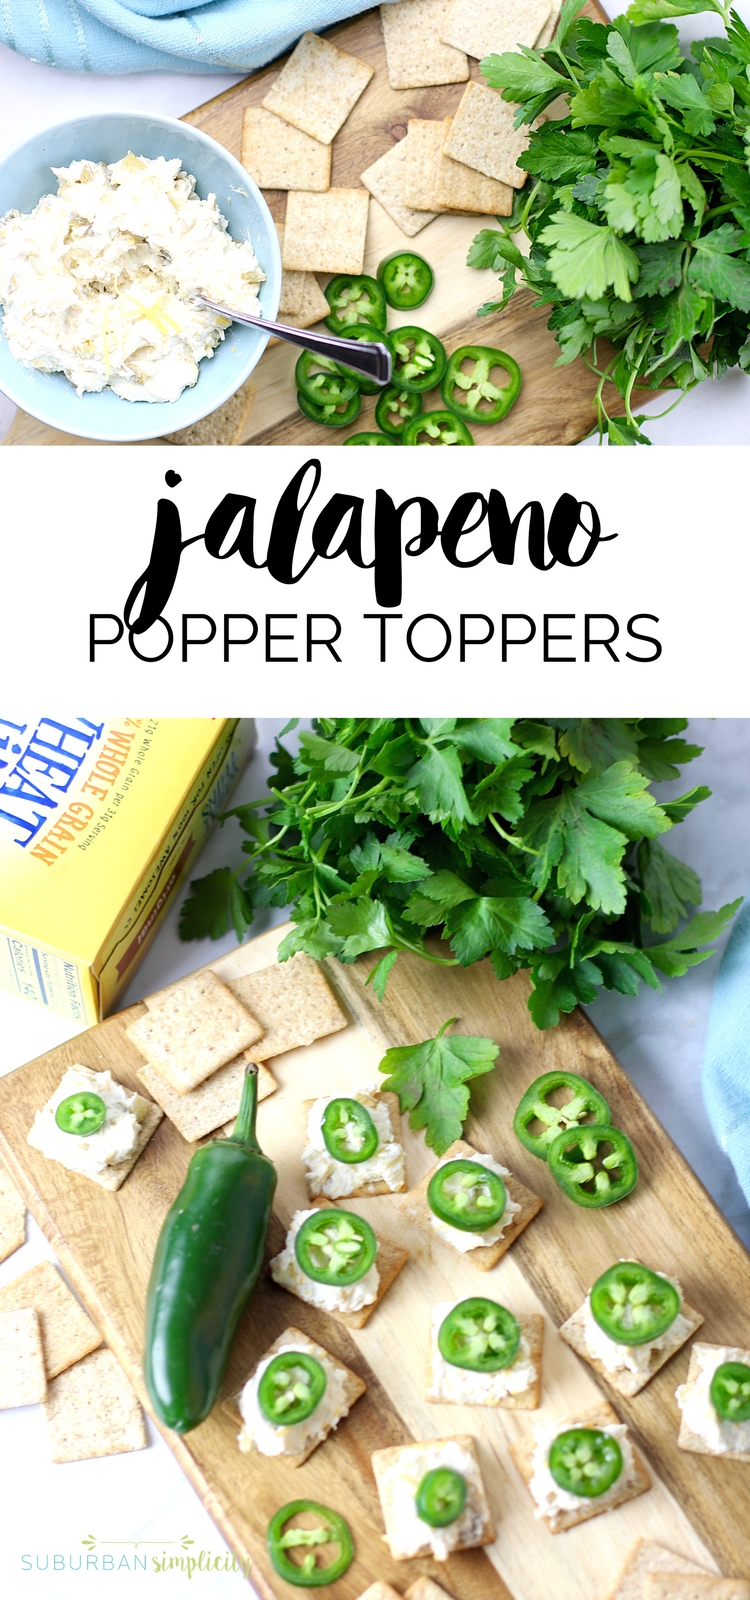 Zesty JALAPEÑO POPPER TOPPERS with WHEAT THINS make the perfectsnack for your game day spread. Bite-sized, but plenty of kick featuring a creamy, cheesyspread topped with a fresh jalapeño that you can't resist! #ad #appetizer #gamedayrecipes